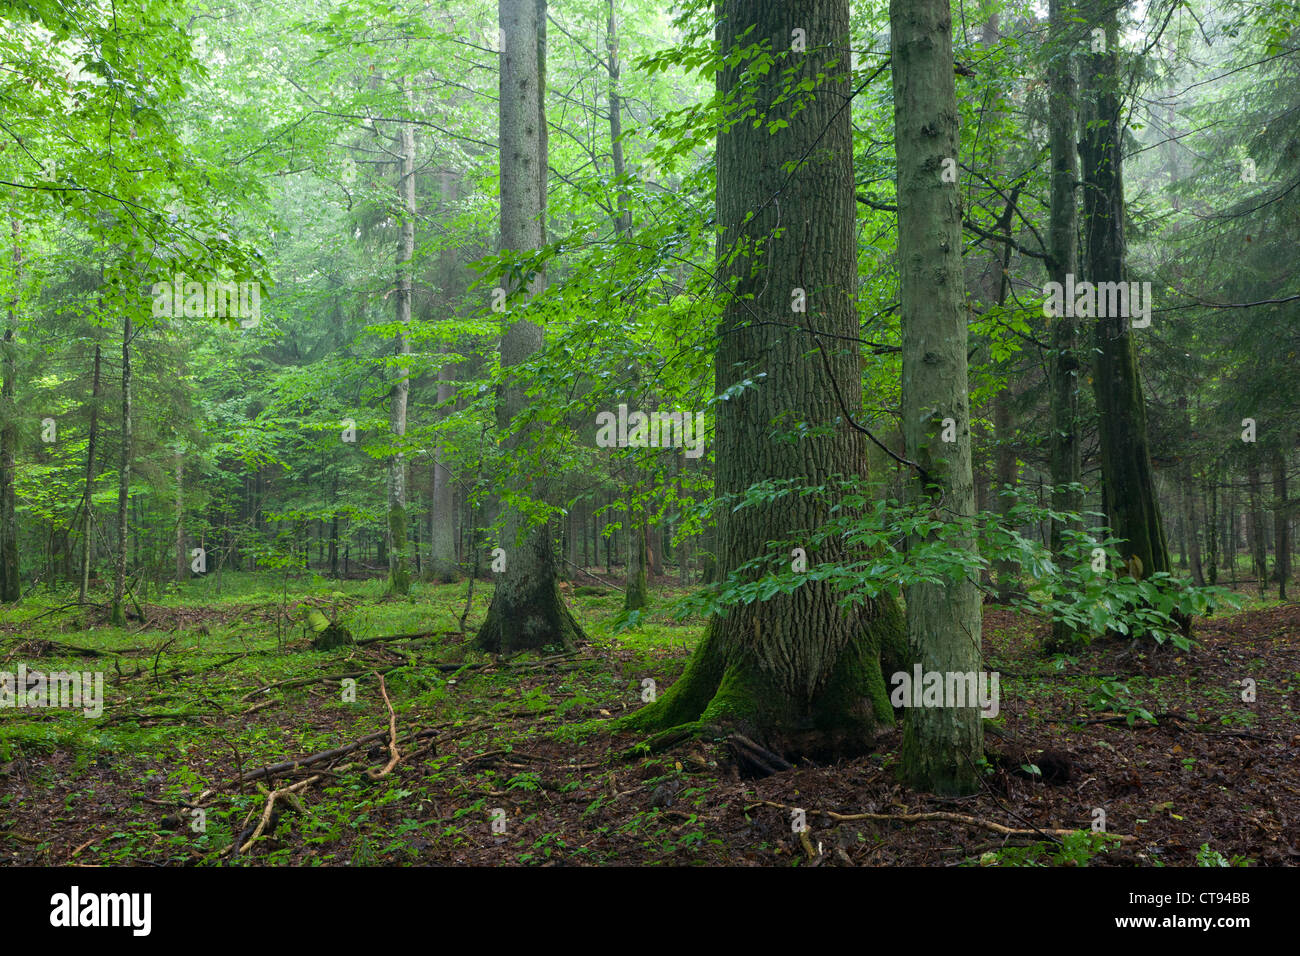 Misty morning deciduous stand with old oak tree in foreground and spruces in background - Stock Image